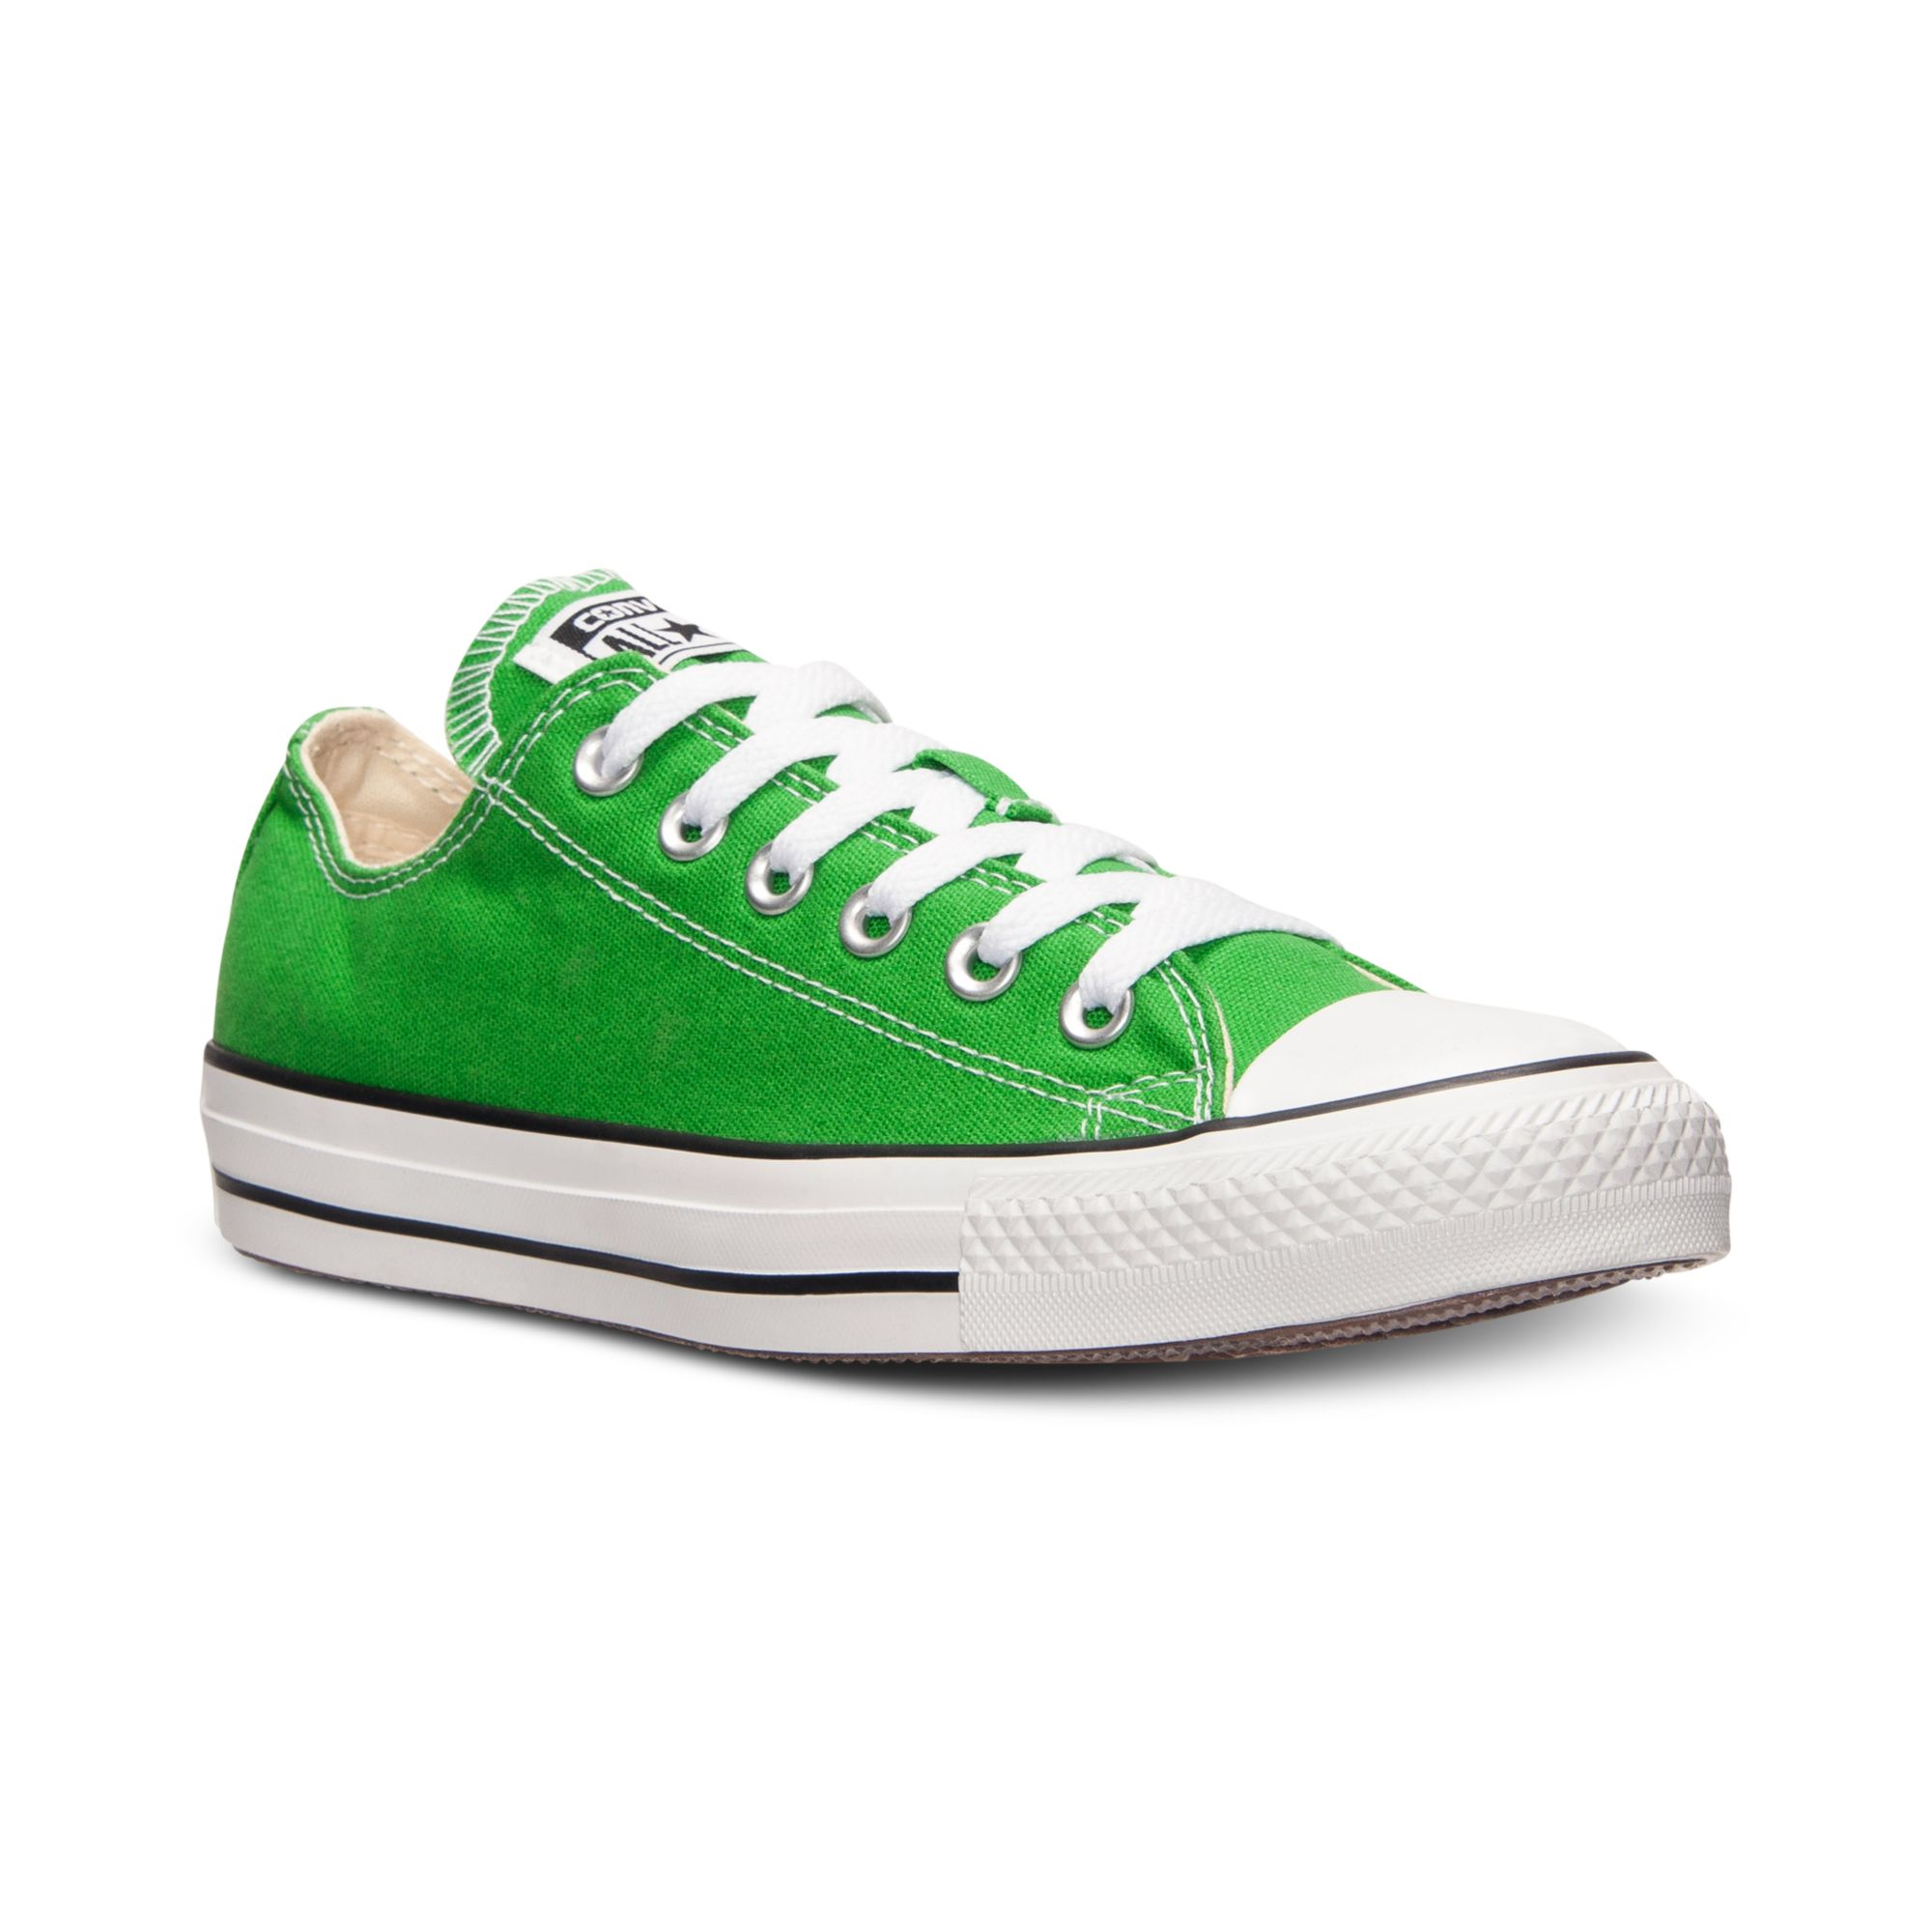 Lyst - Converse Mens Chuck Taylor Ox Casual Sneakers From Finish ... 94bcd3490